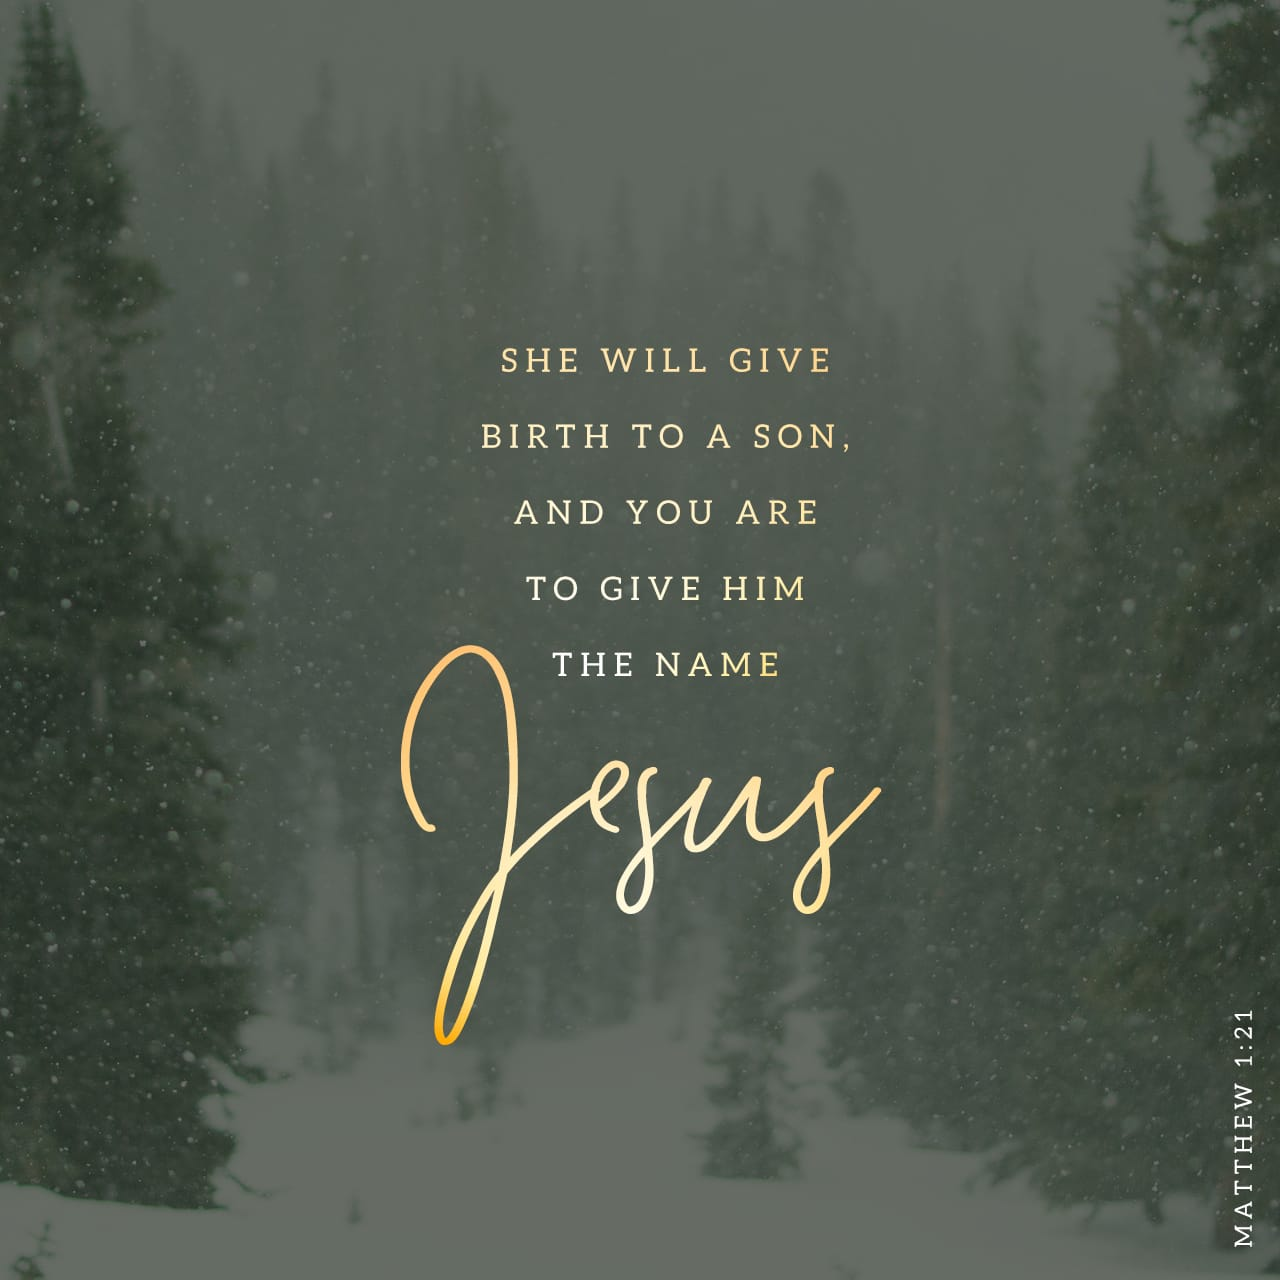 Matthew 1:21 She will give birth to a son, and you are to give him the name Jesus, because he will save his people from their sins."